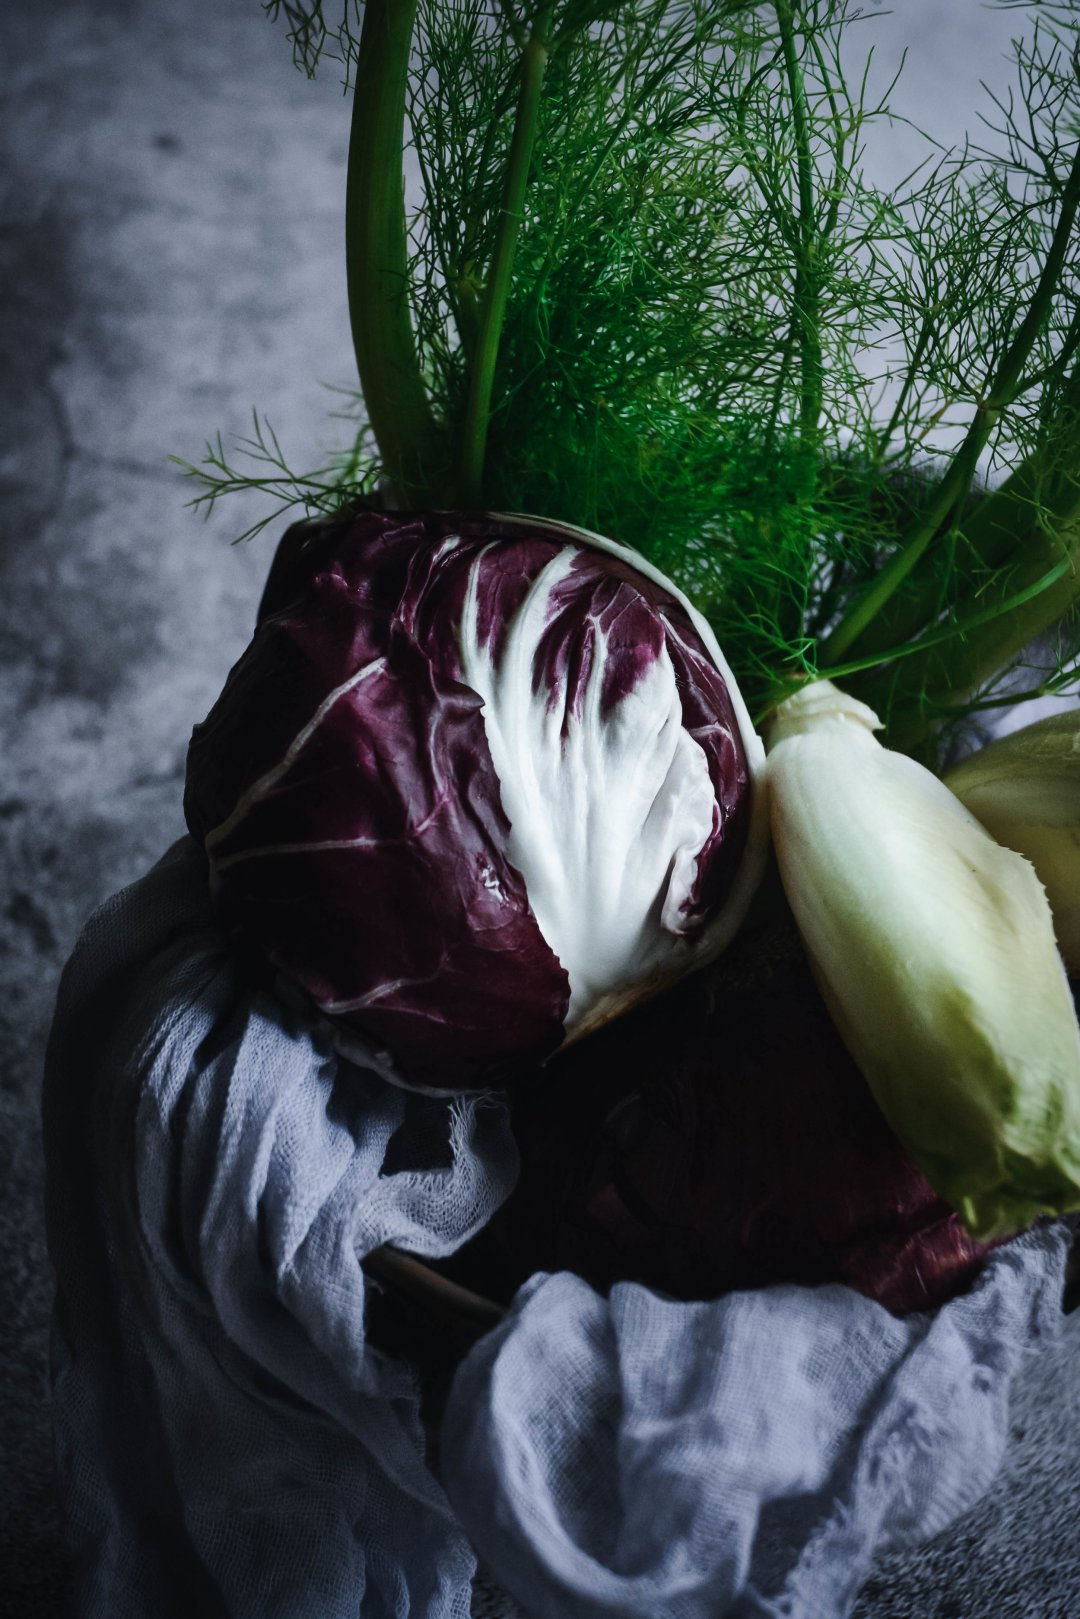 Radicchio, endive and fennel on napkin